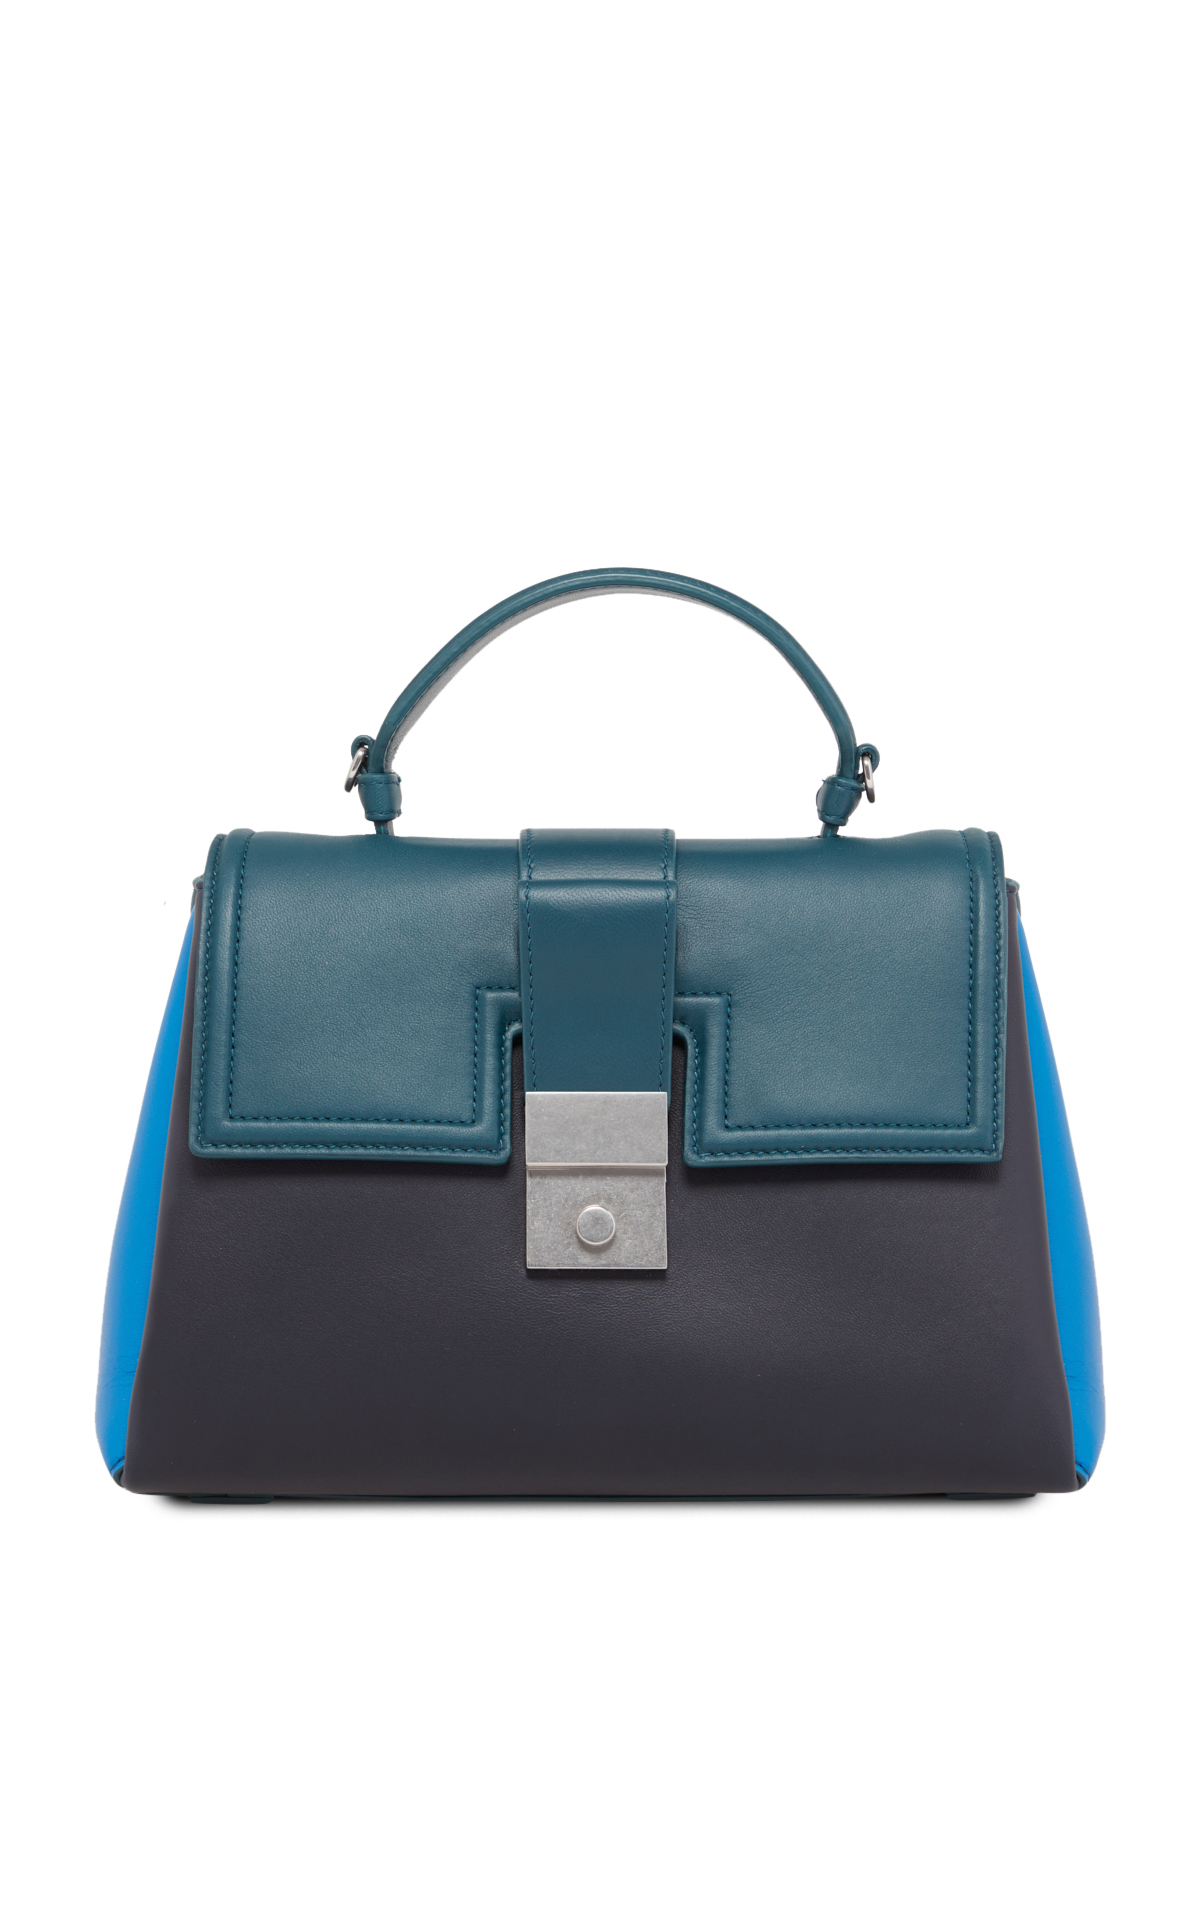 Bottega Veneta Black and green leather handbag